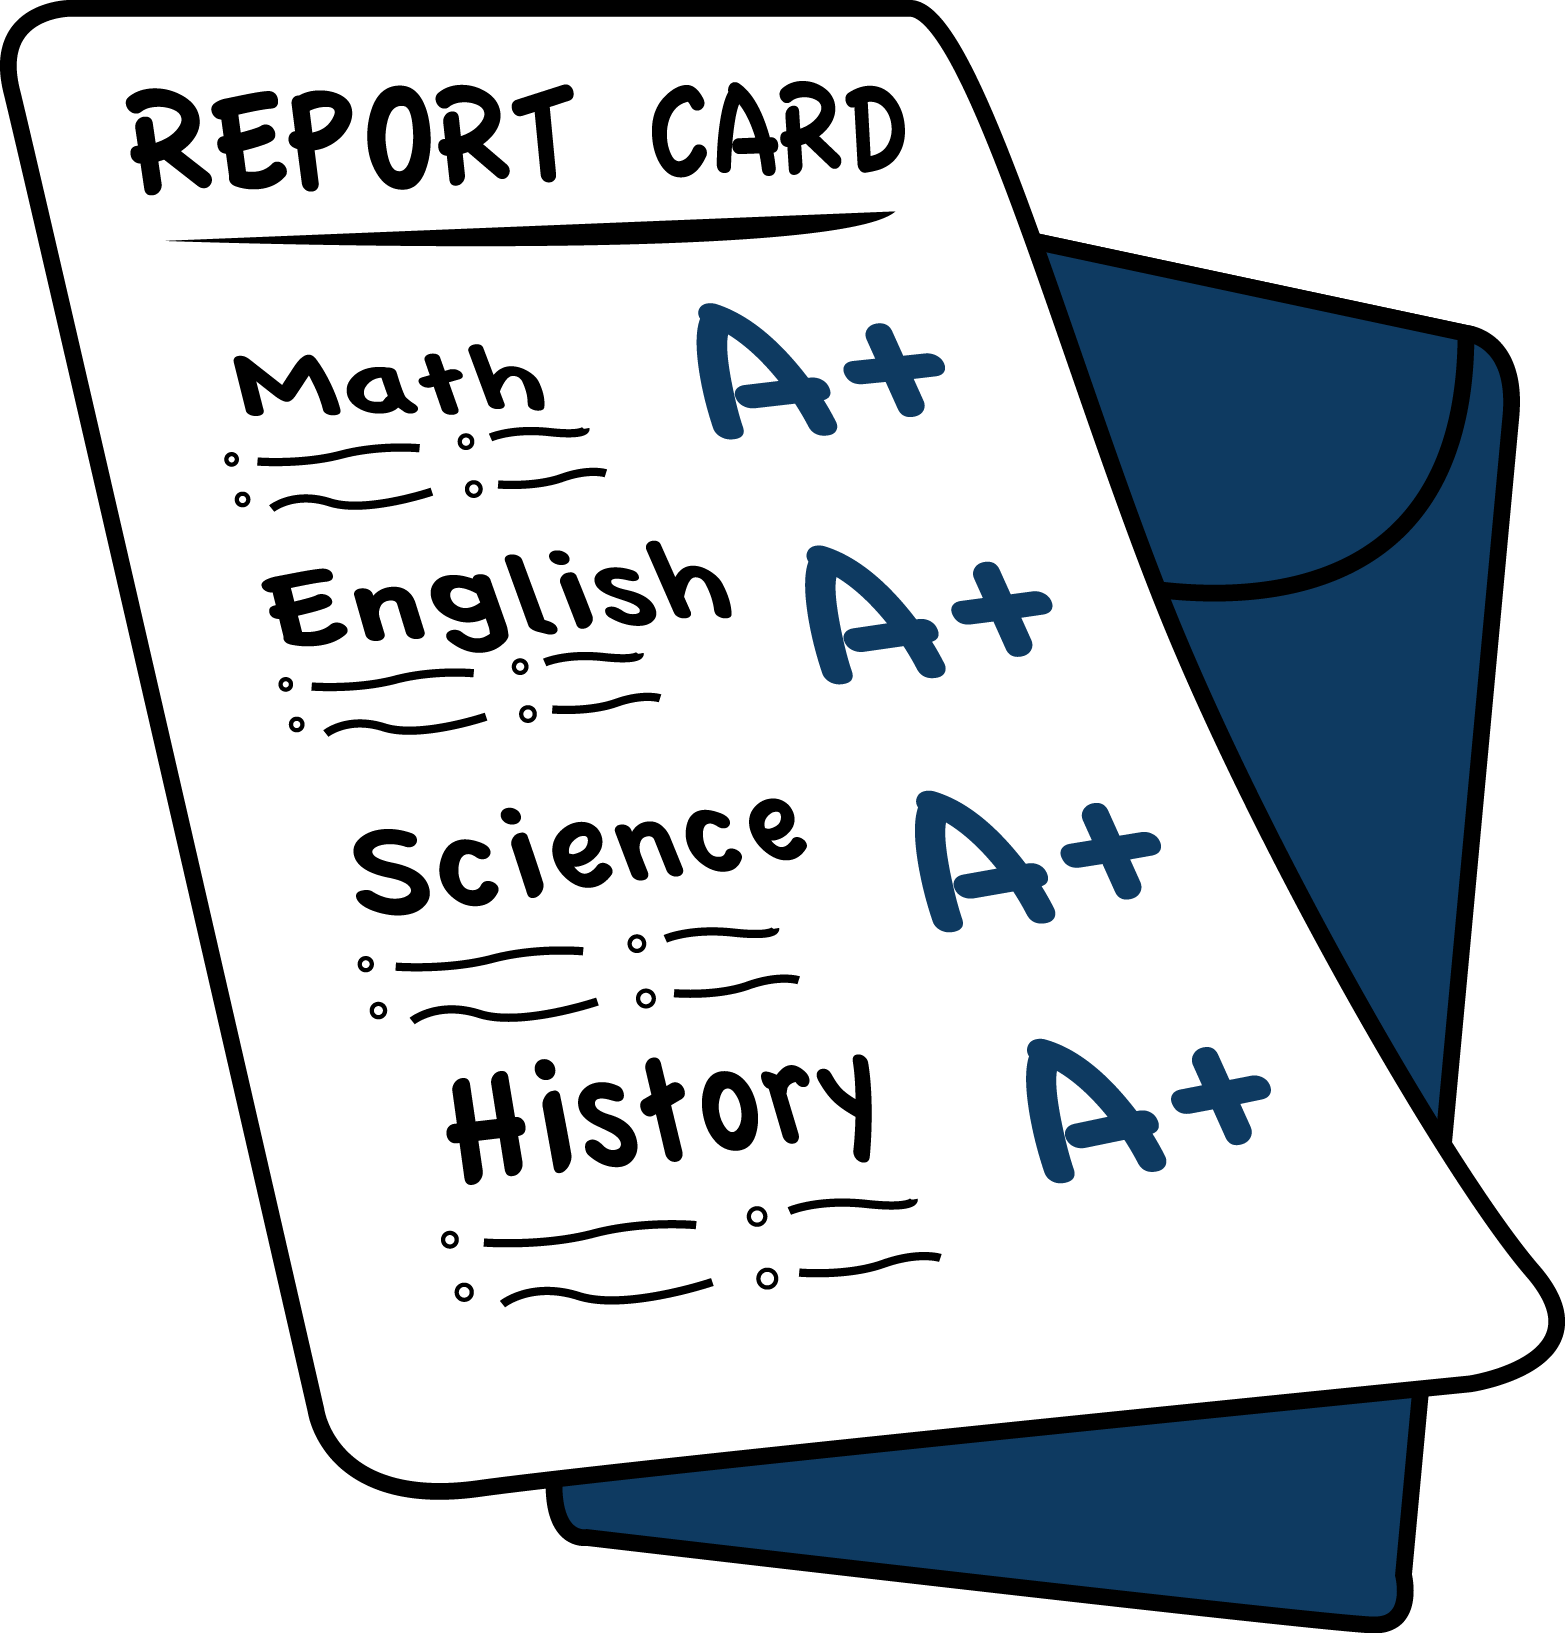 picture Report clipart grade card. Png transparent images pluspng